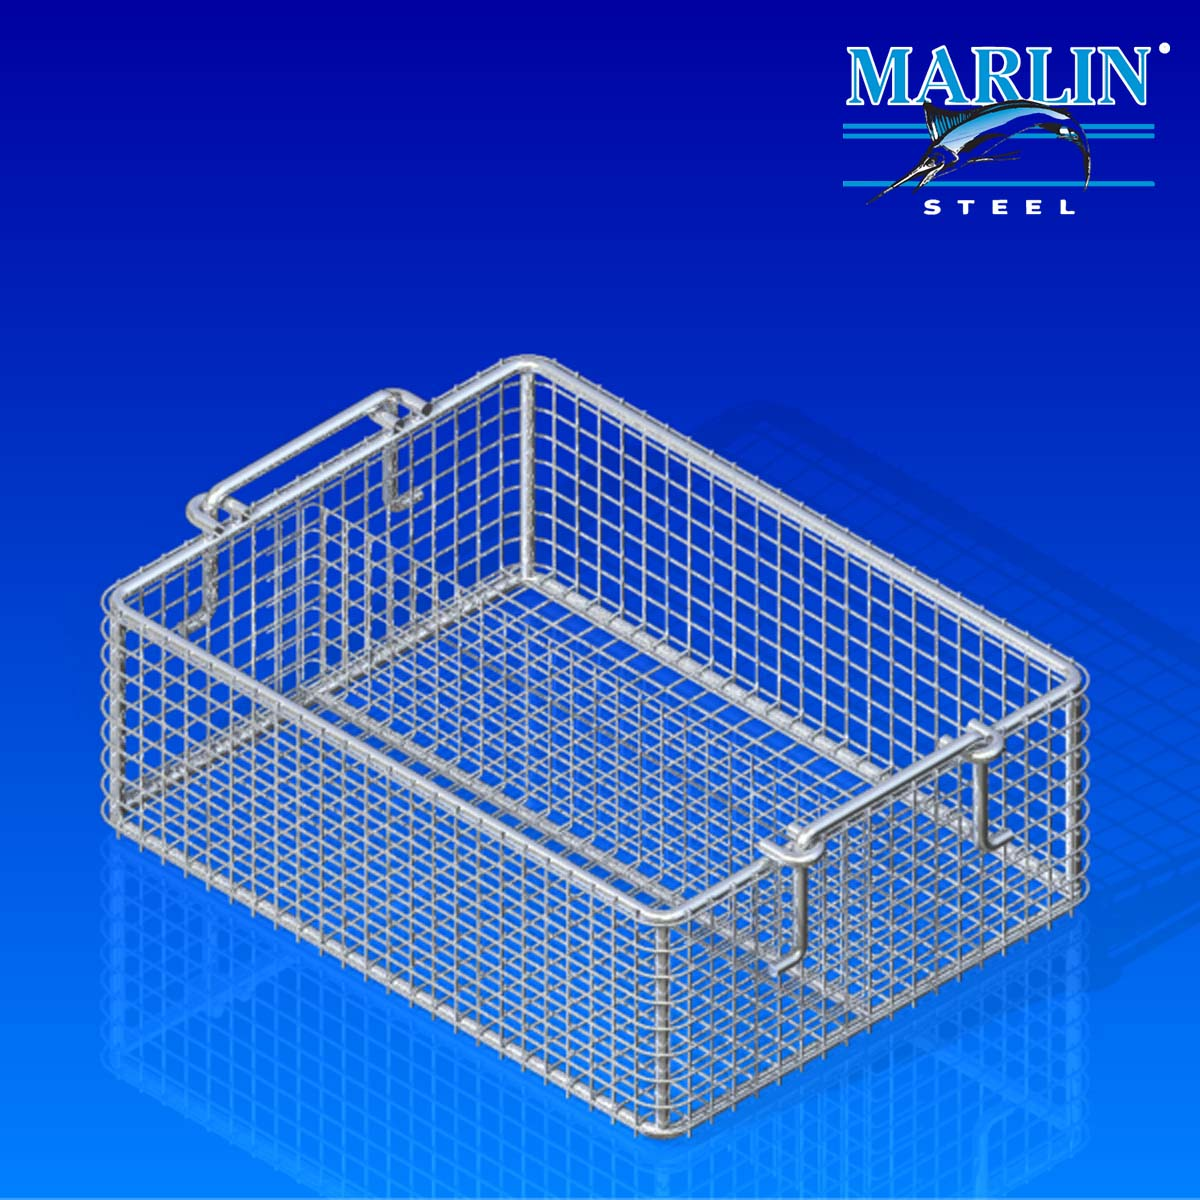 Marlin Steel Basket with Handles 775001